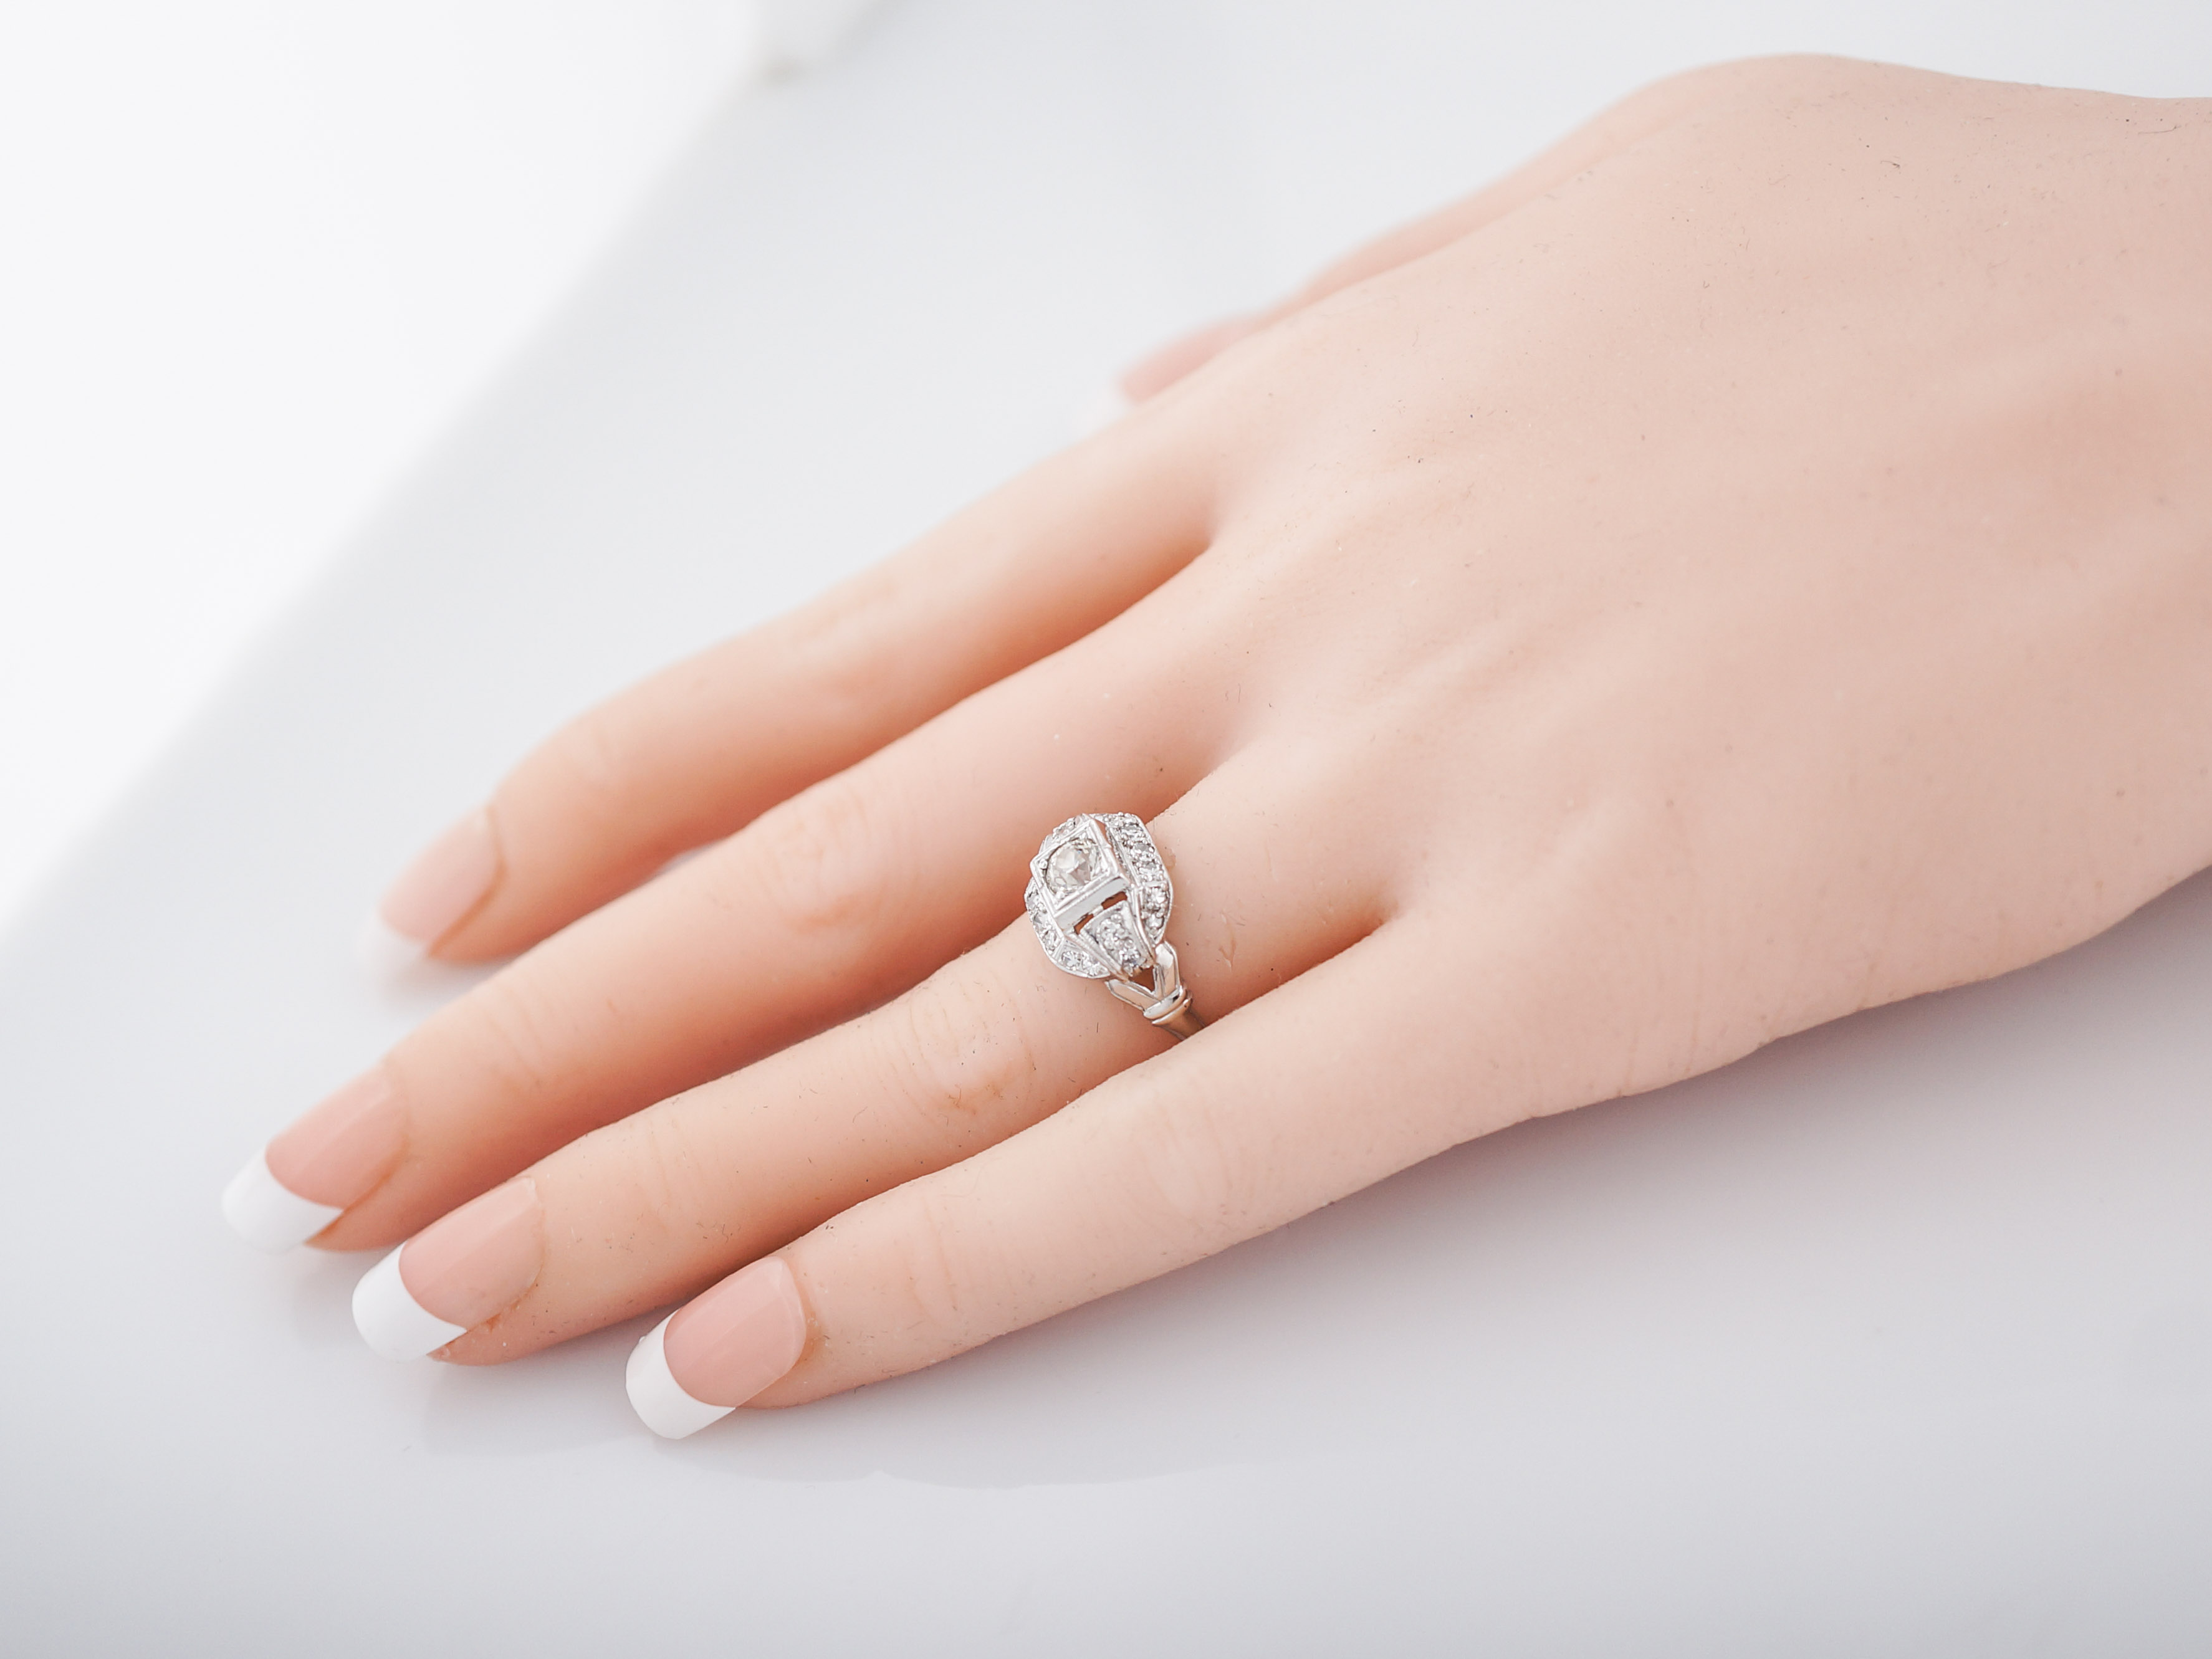 Vintage Engagement Ring Art Deco .33 Old European Cut in 18k White Gold